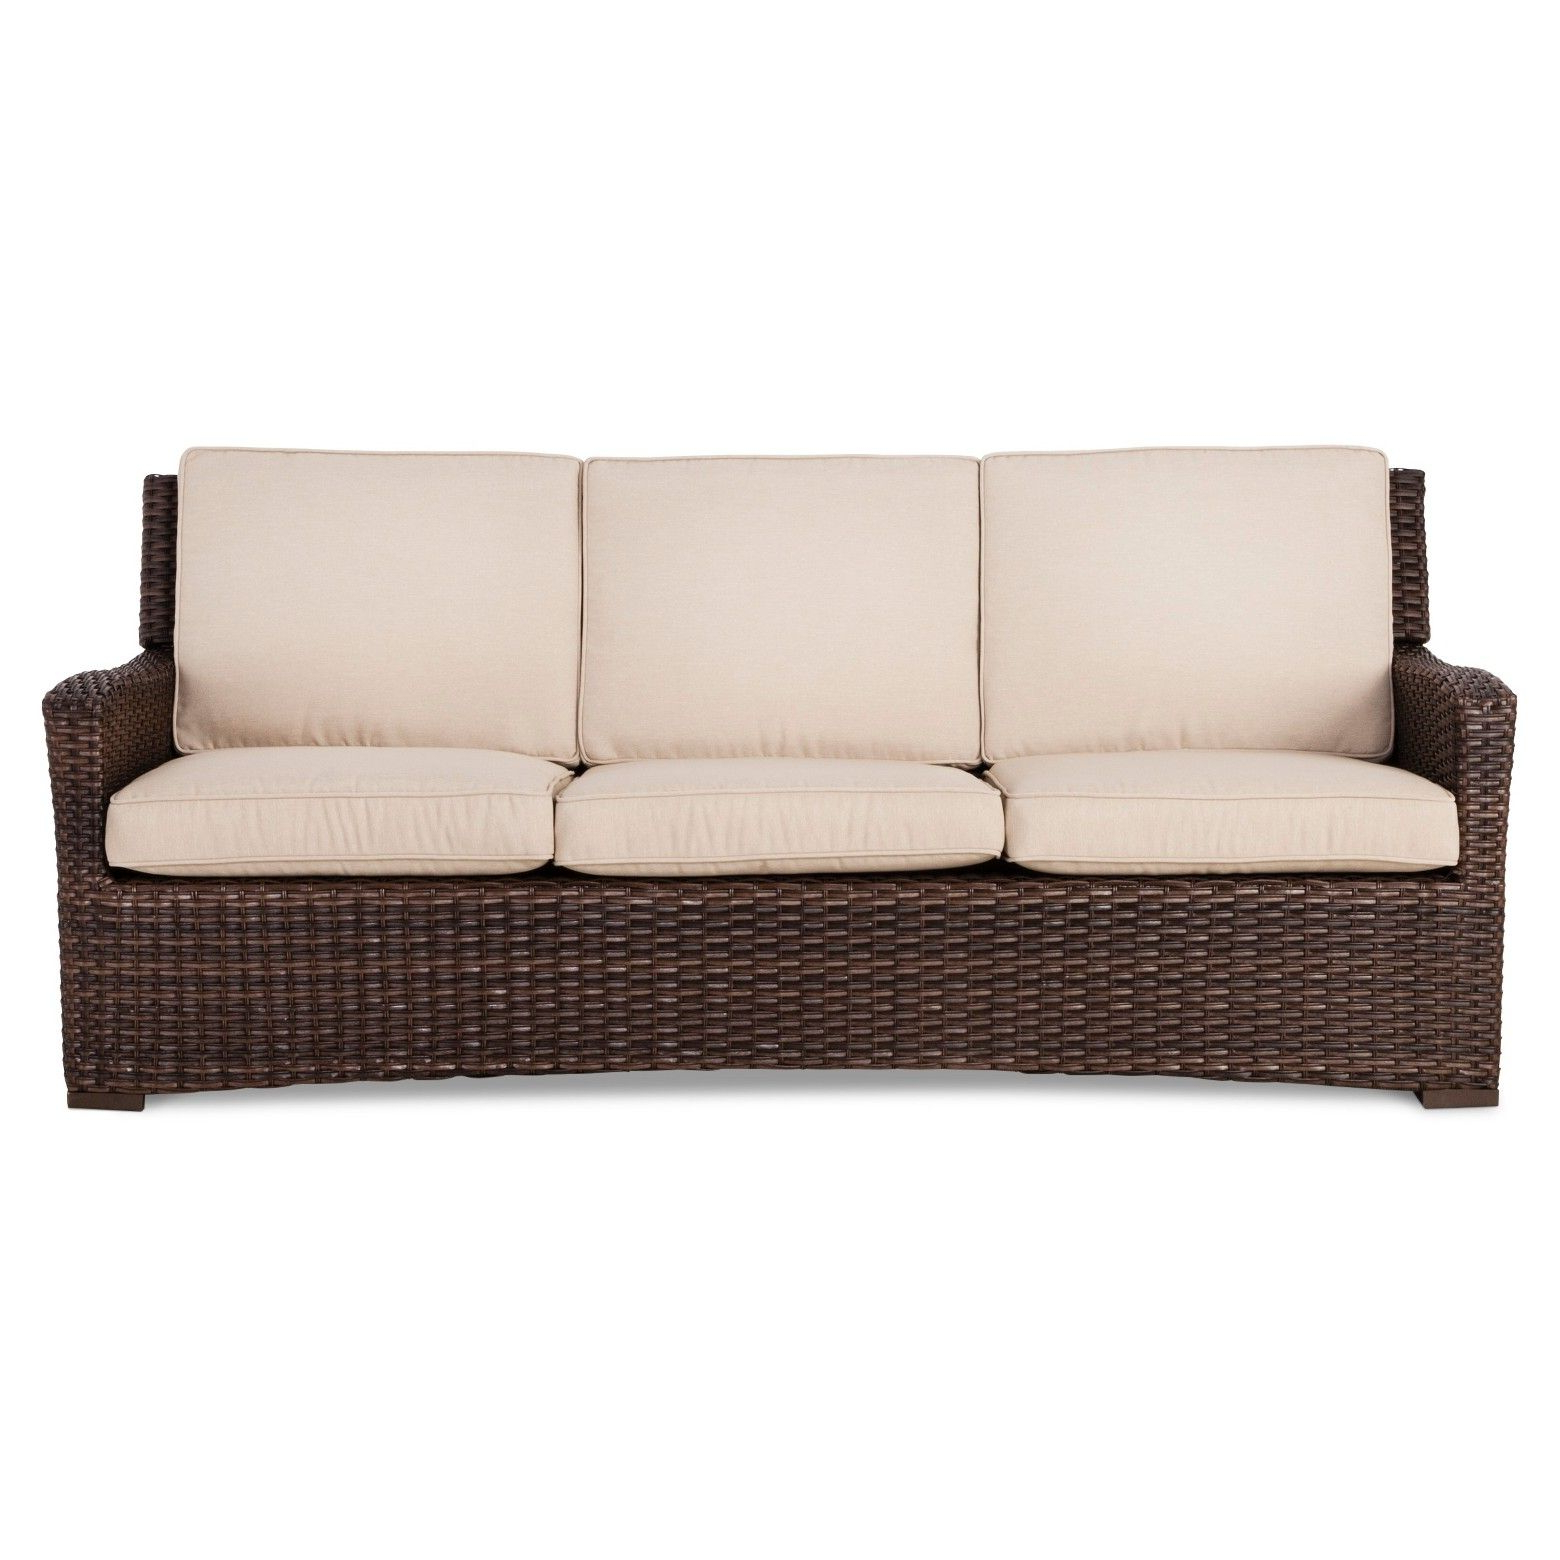 Popular Astrid Wicker Patio Sofas With Cushions Pertaining To Halsted Wicker Patio Sofa With Cushions – Threshold™ (View 4 of 25)